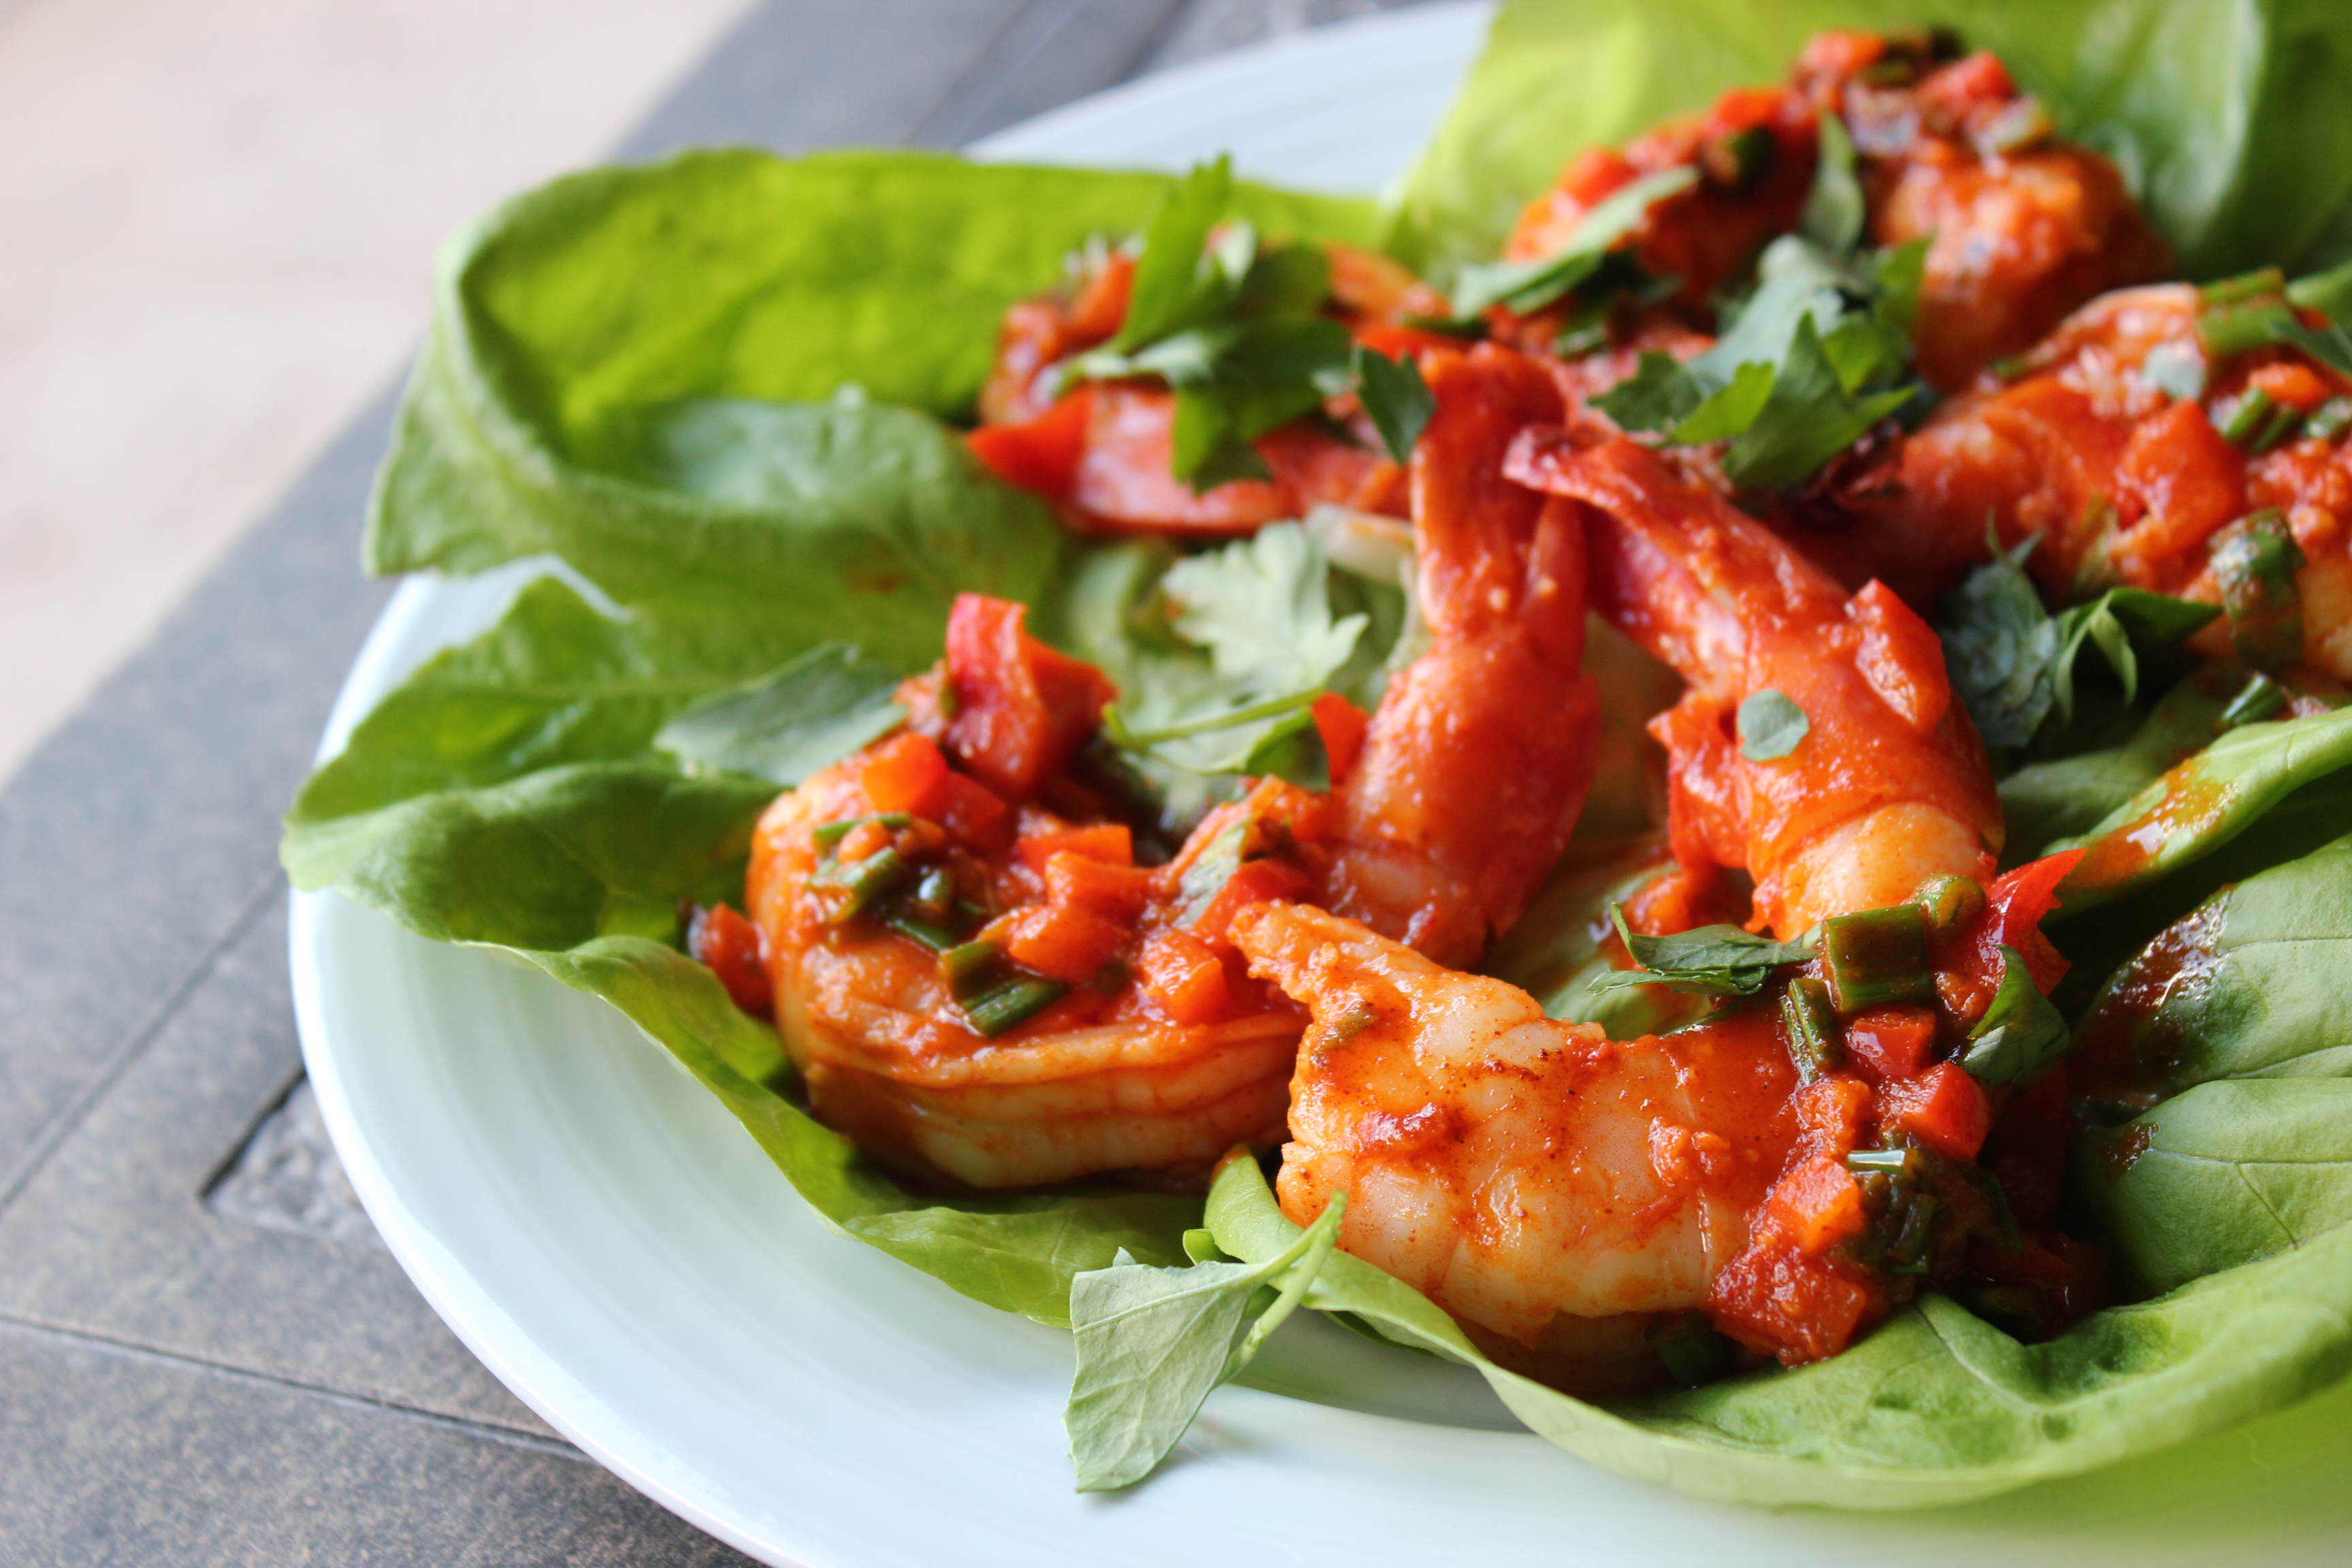 Paleo Sriracha Lime Shrimp | Tiffany Lee Gaston